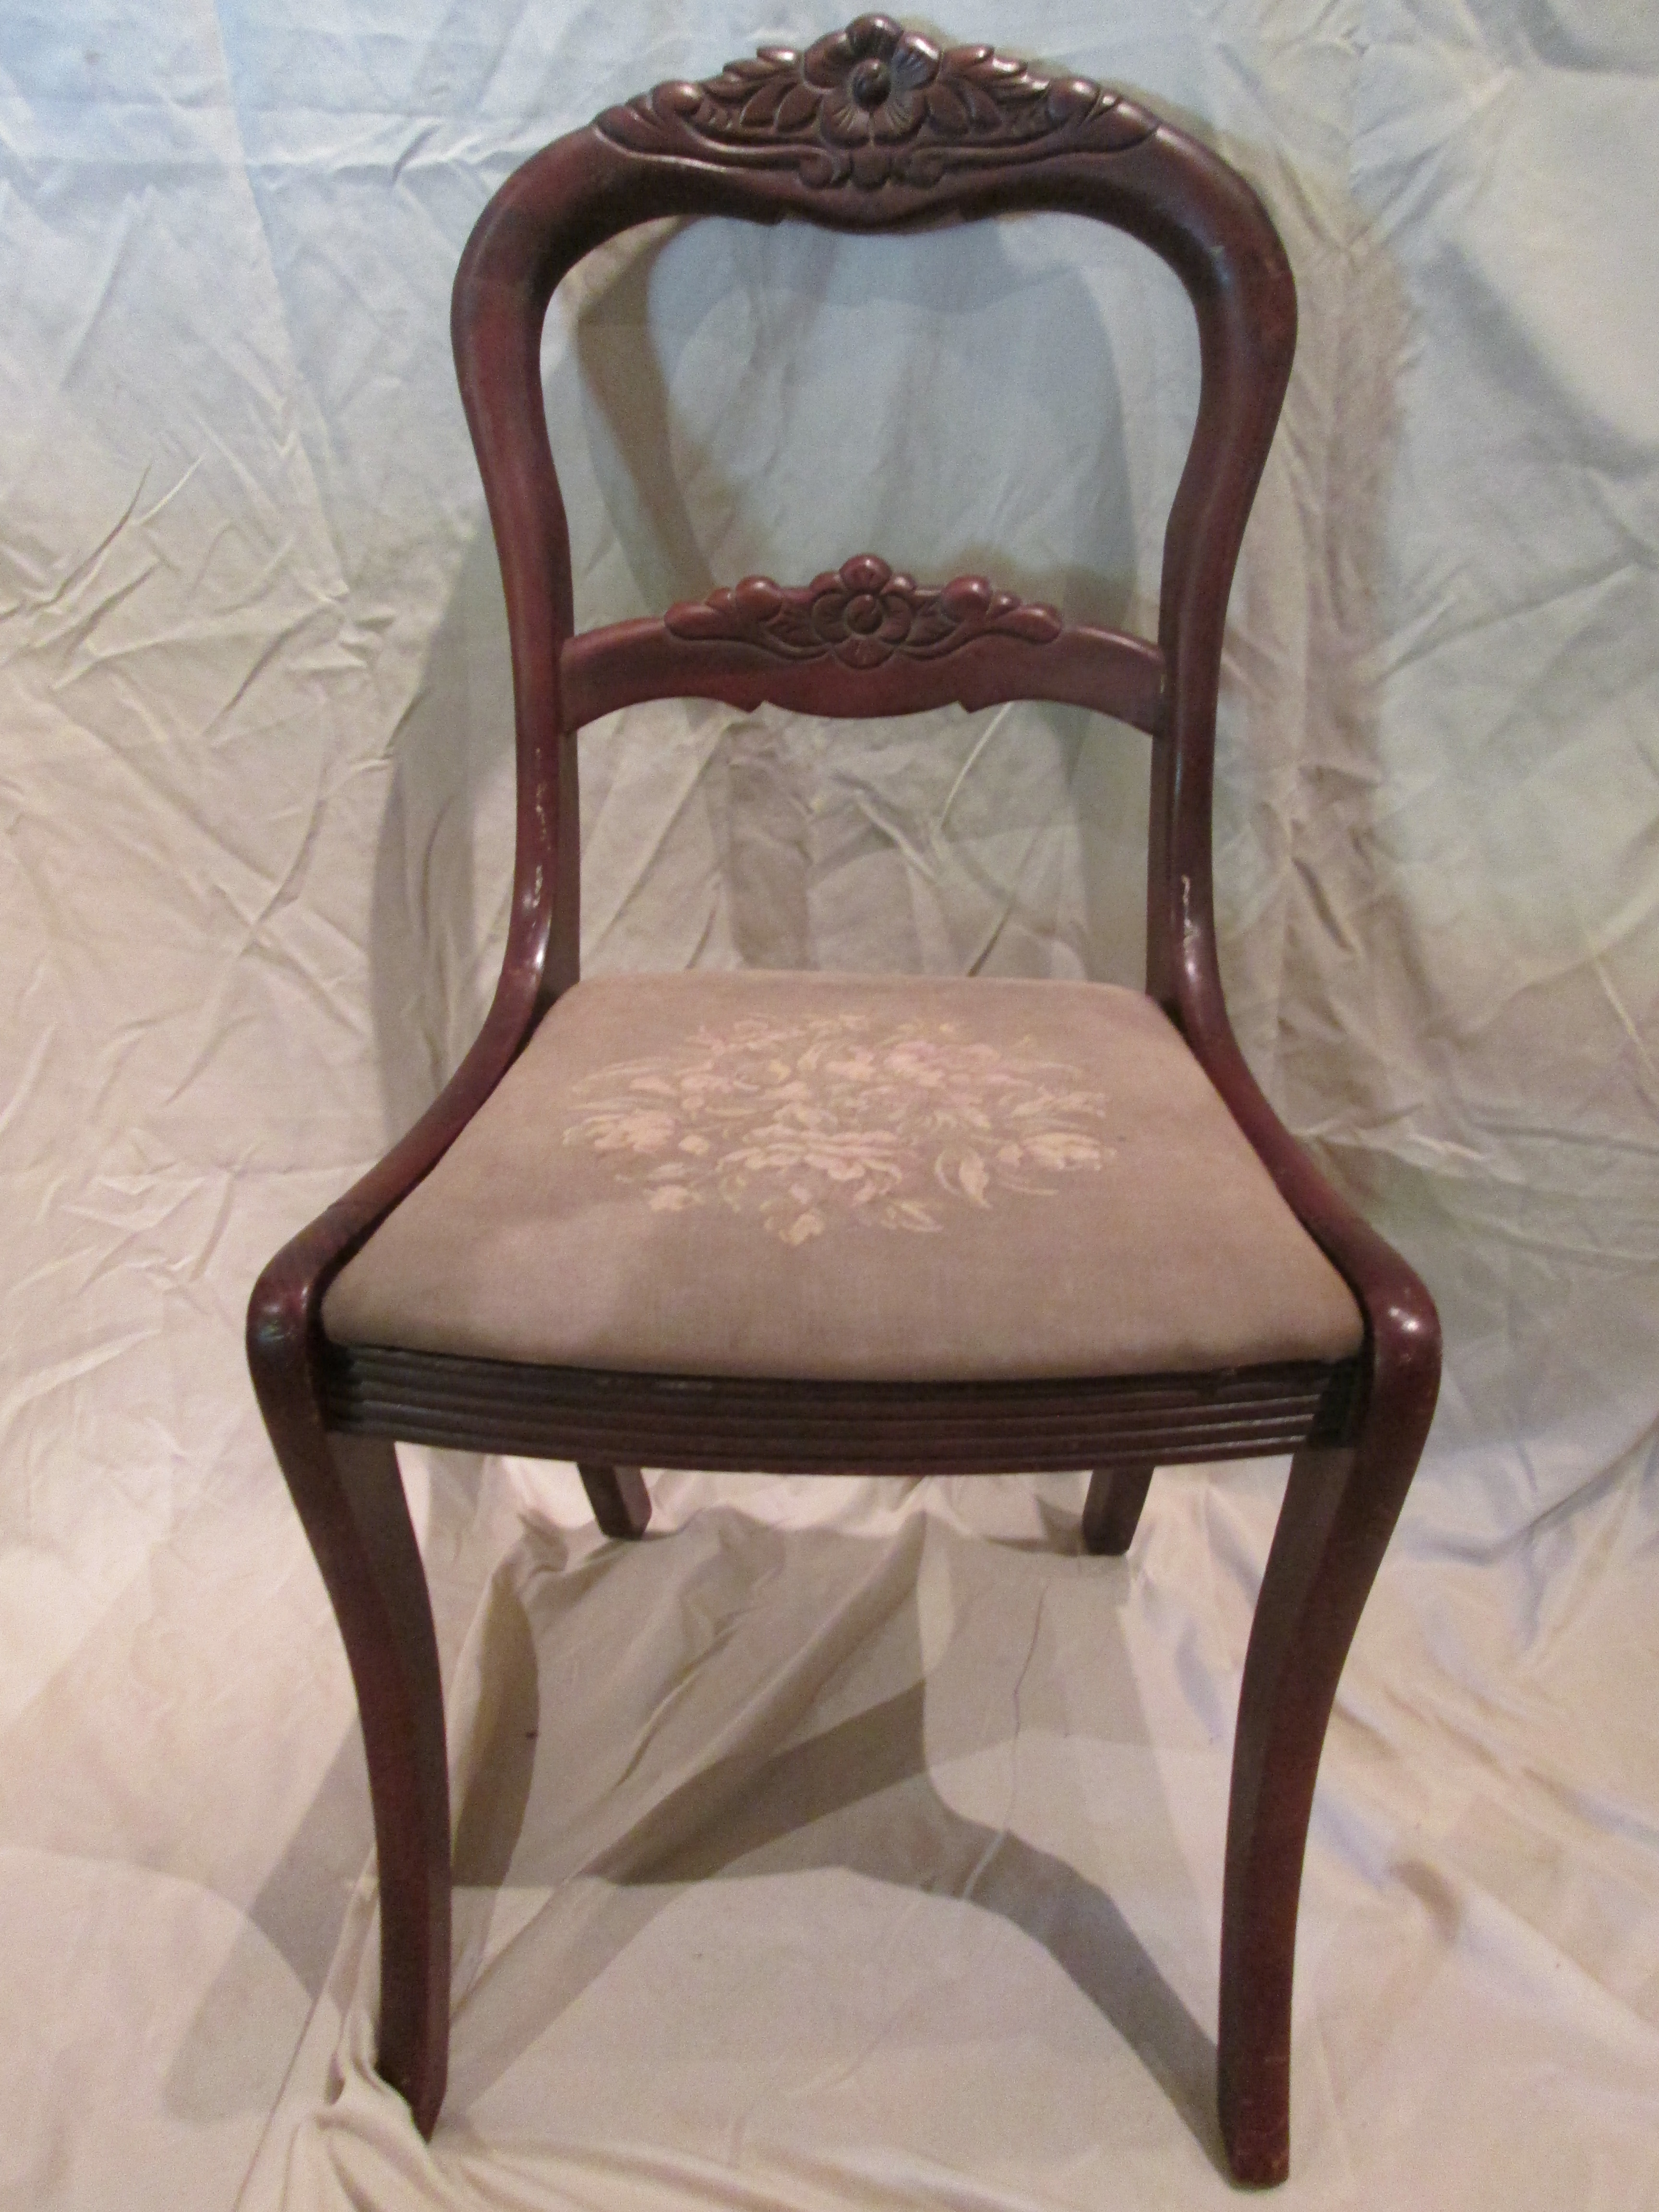 tell city chairs pattern 4548 folding chair hooks company rose balloon back antique